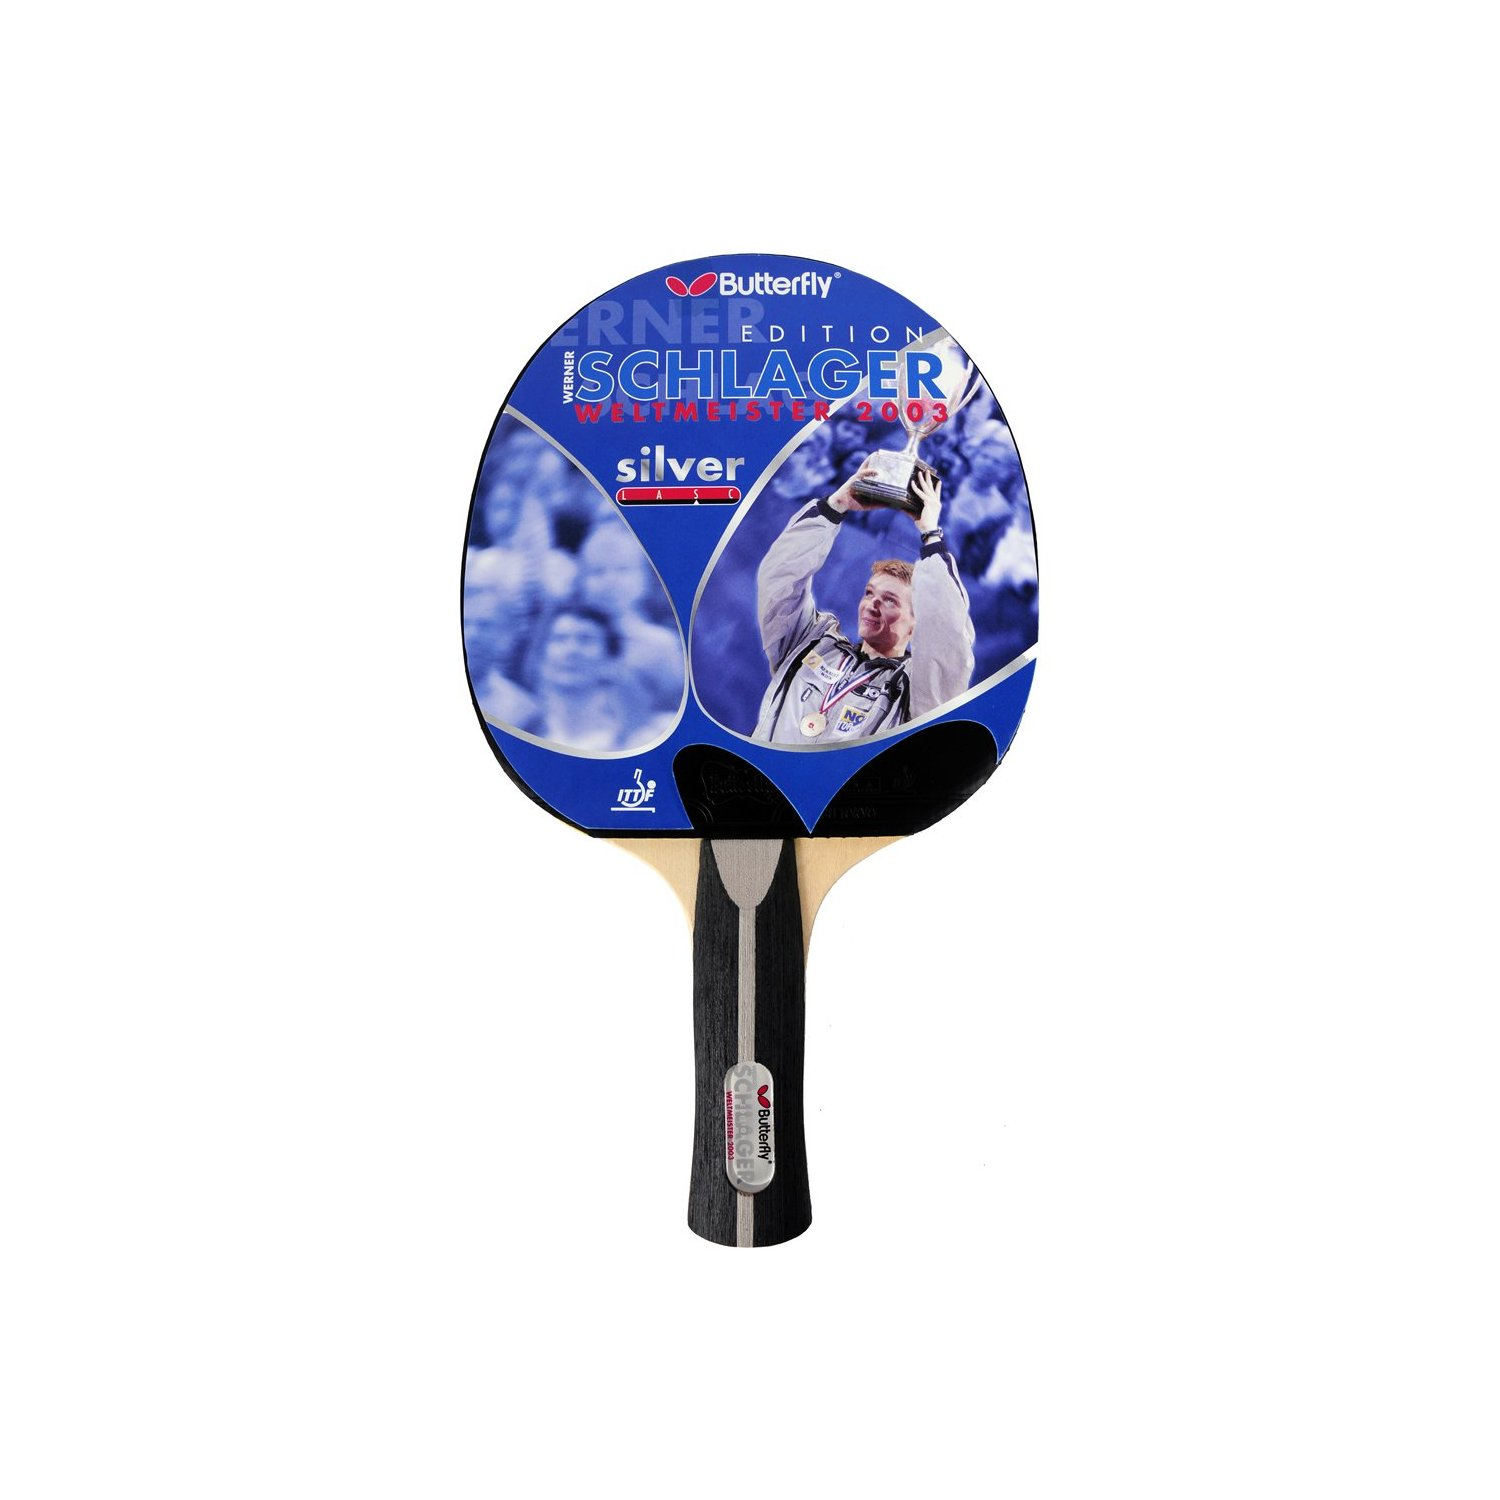 Brand new butterfly quality schlager silver table tennis - Butterfly table tennis official website ...